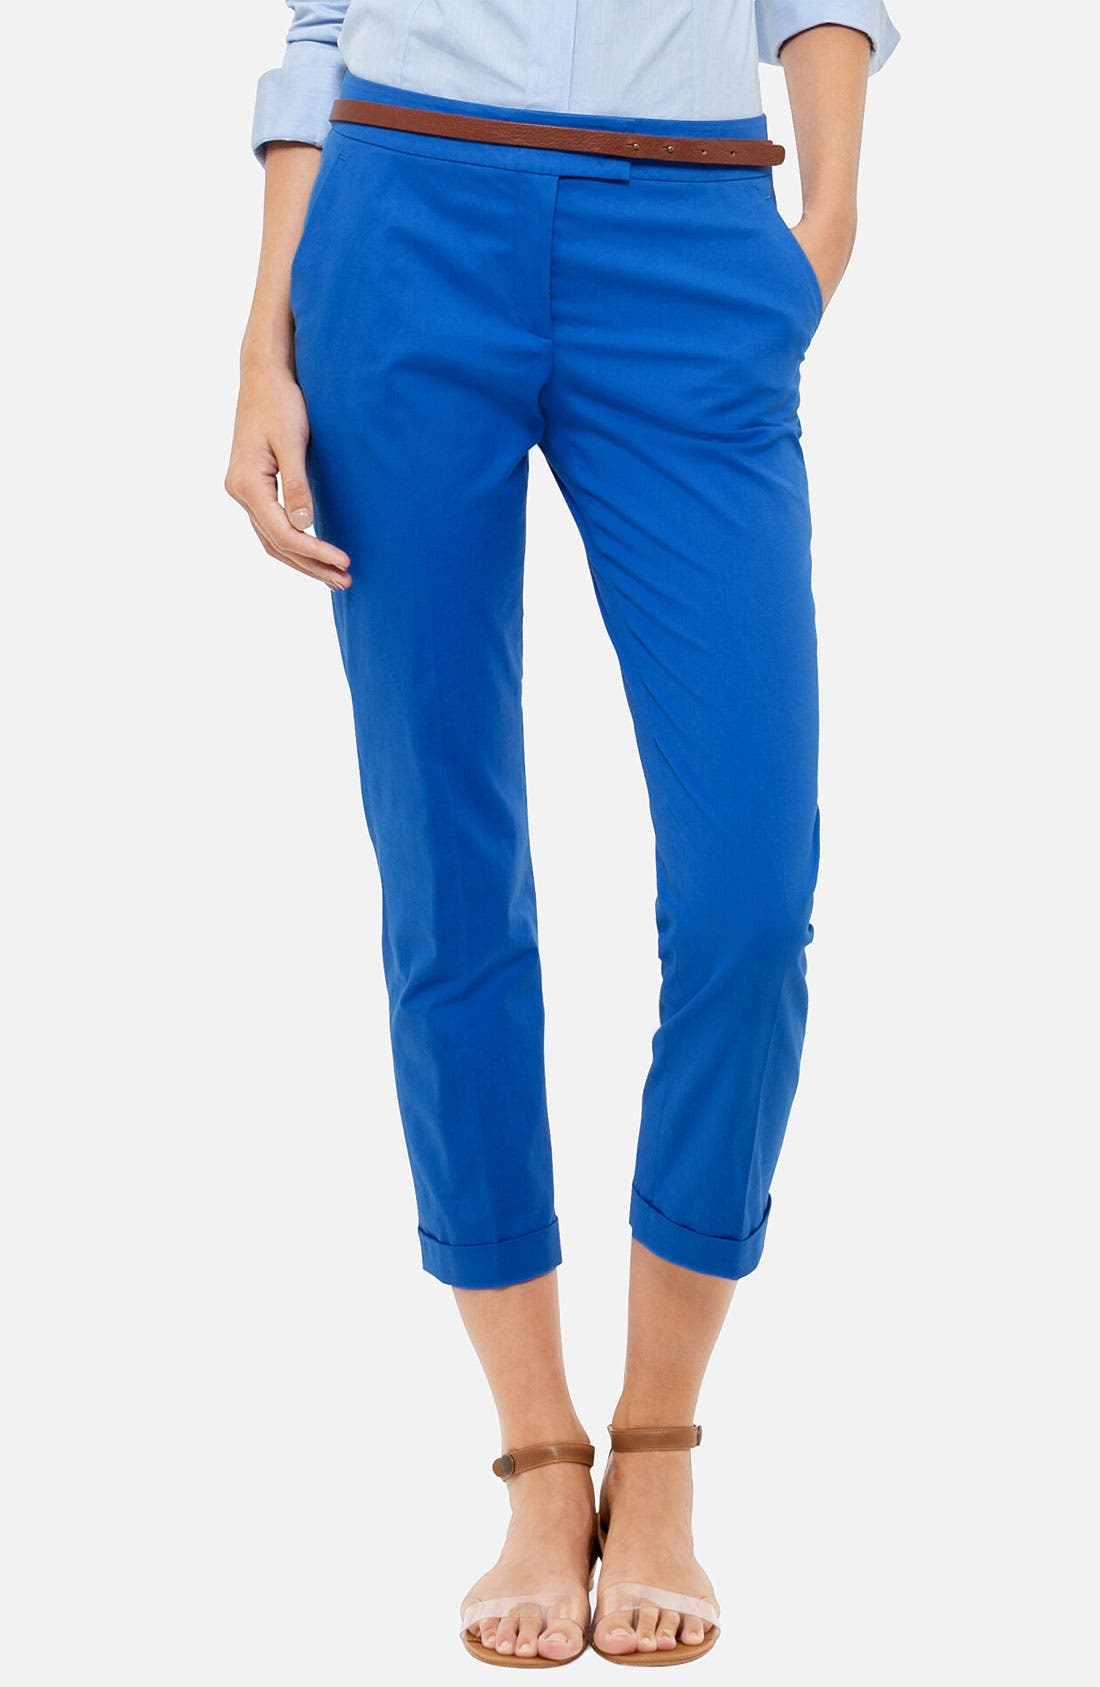 Alternate Image 1 Selected - Akris punto 'Frankie' Stretch Cotton Crop Pants